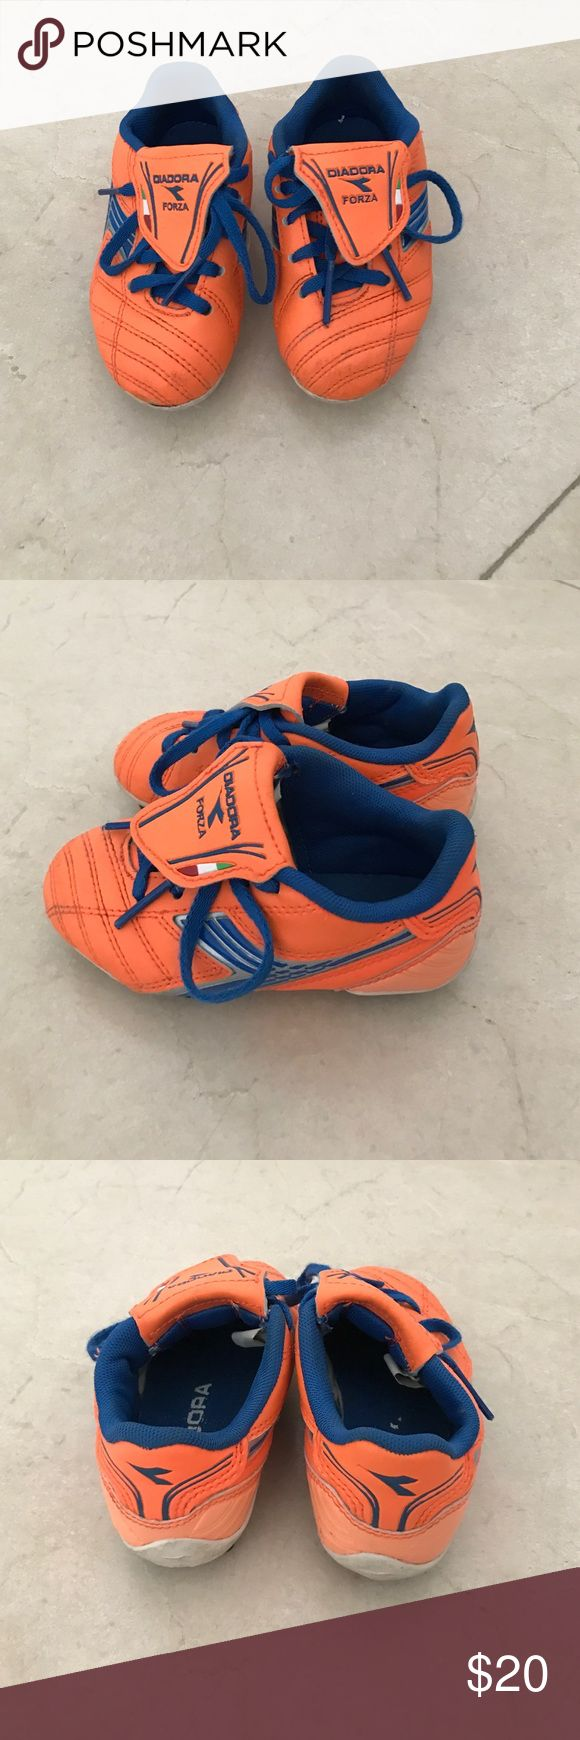 b91b044c9e5 toddler soccer cleats size 6 on sale   OFF35% Discounts